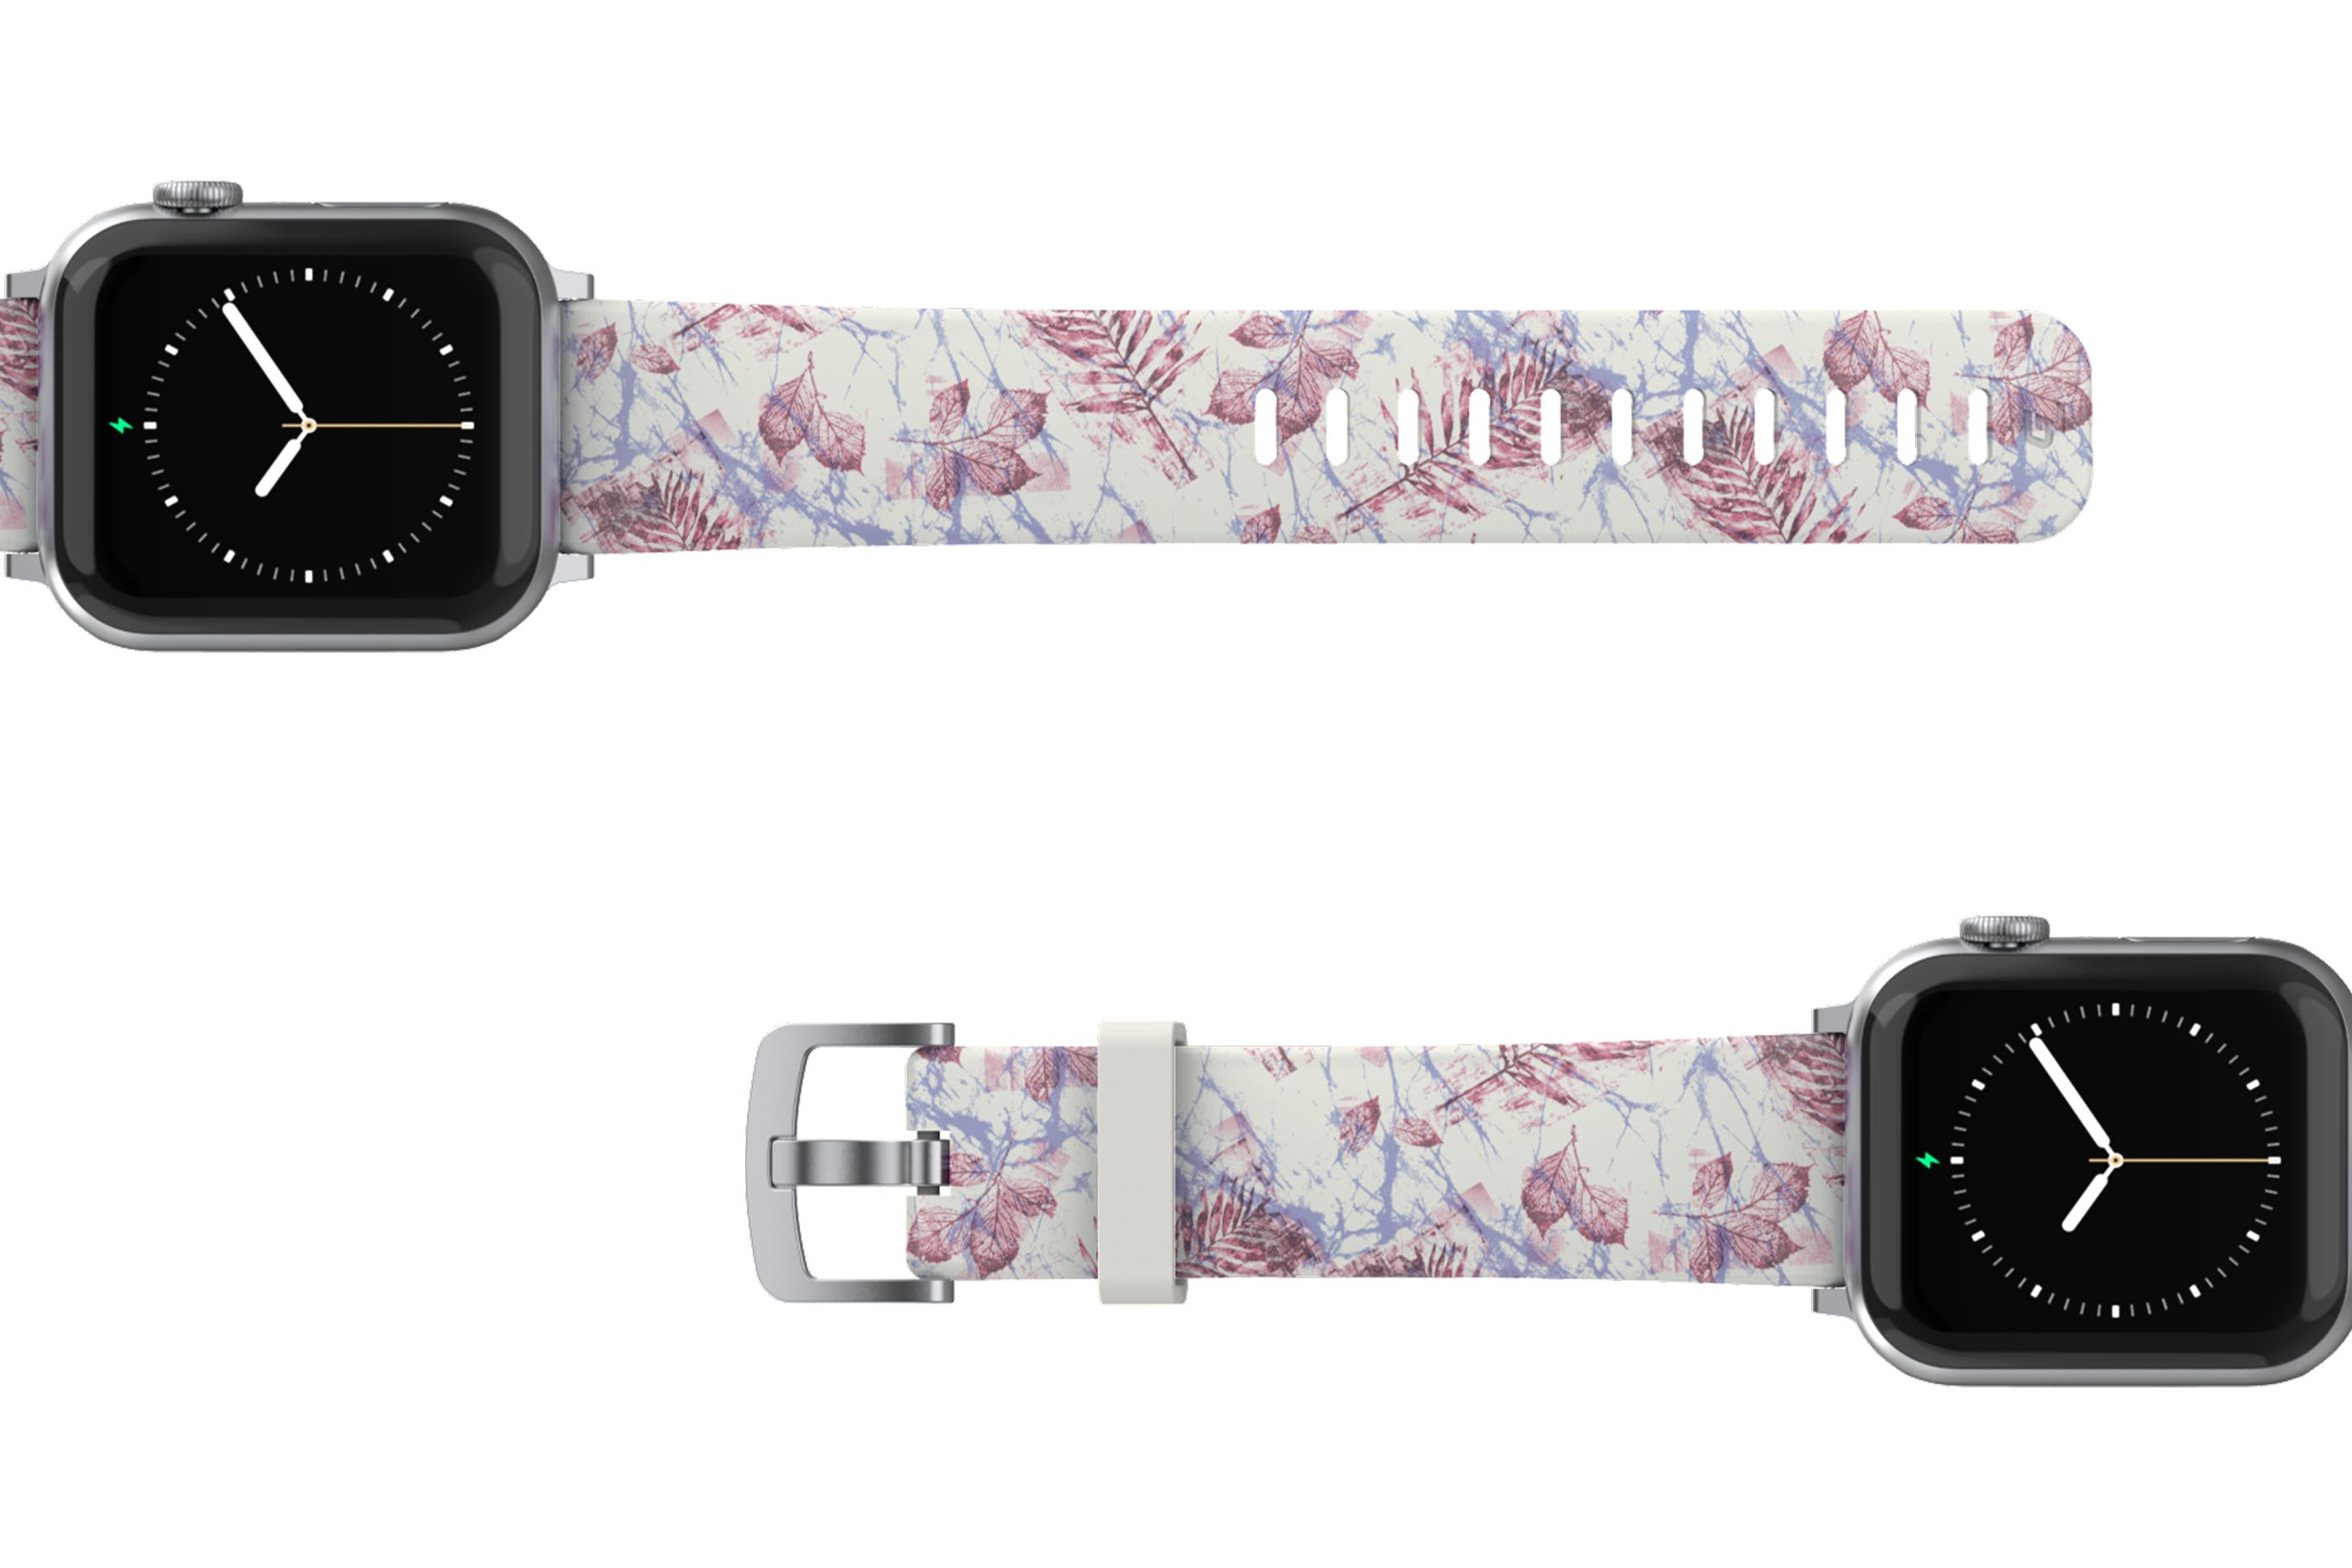 Breeze Apple Watch Band with gray hardware viewed top down